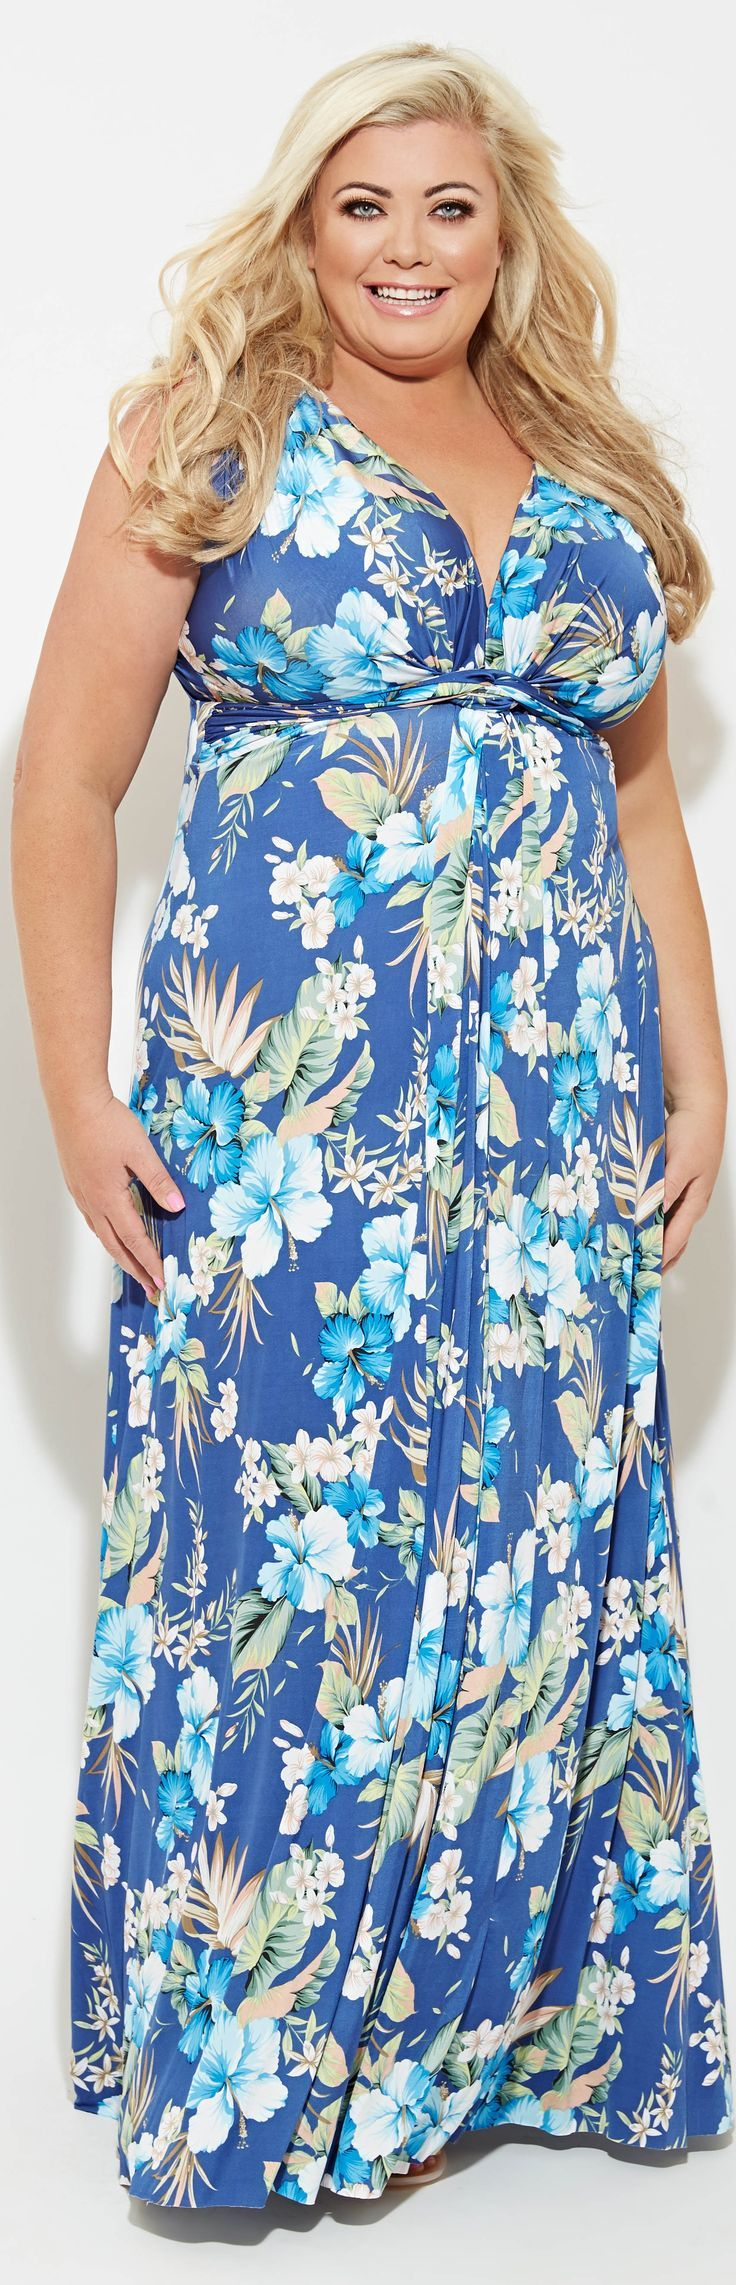 Bildresultat för hawaiian print dress plus size